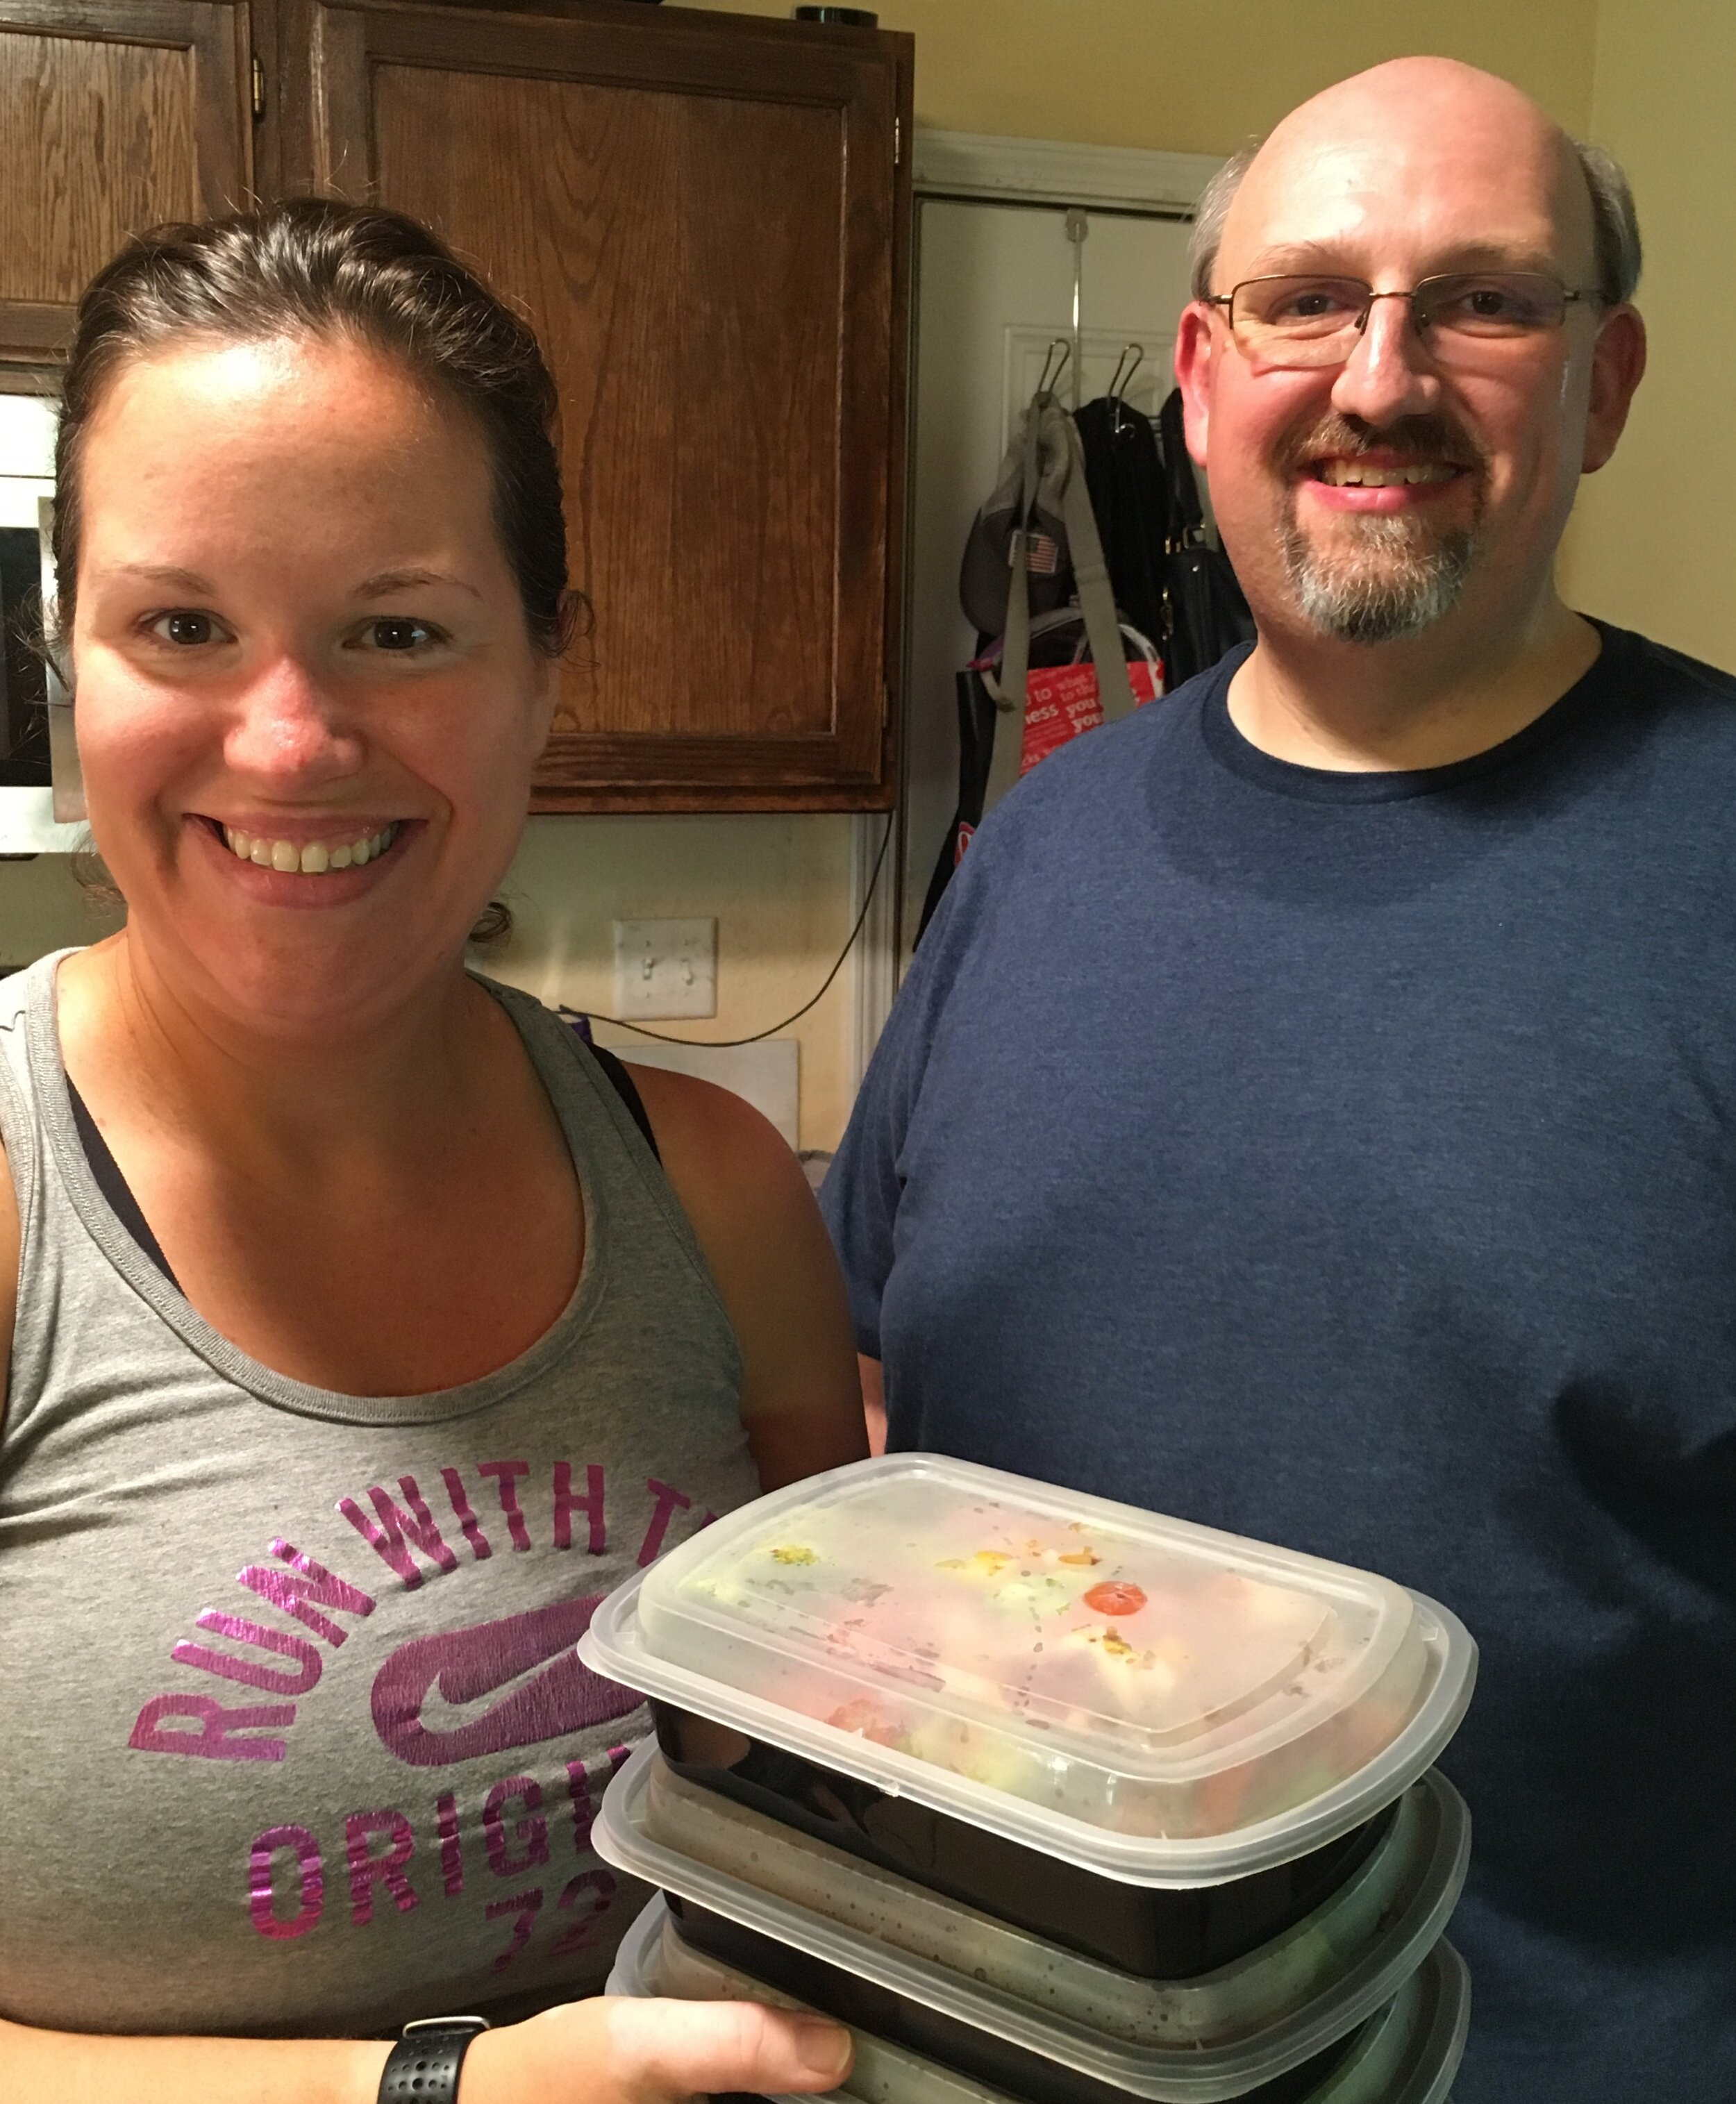 Alyson and Jeff, with two finished meals